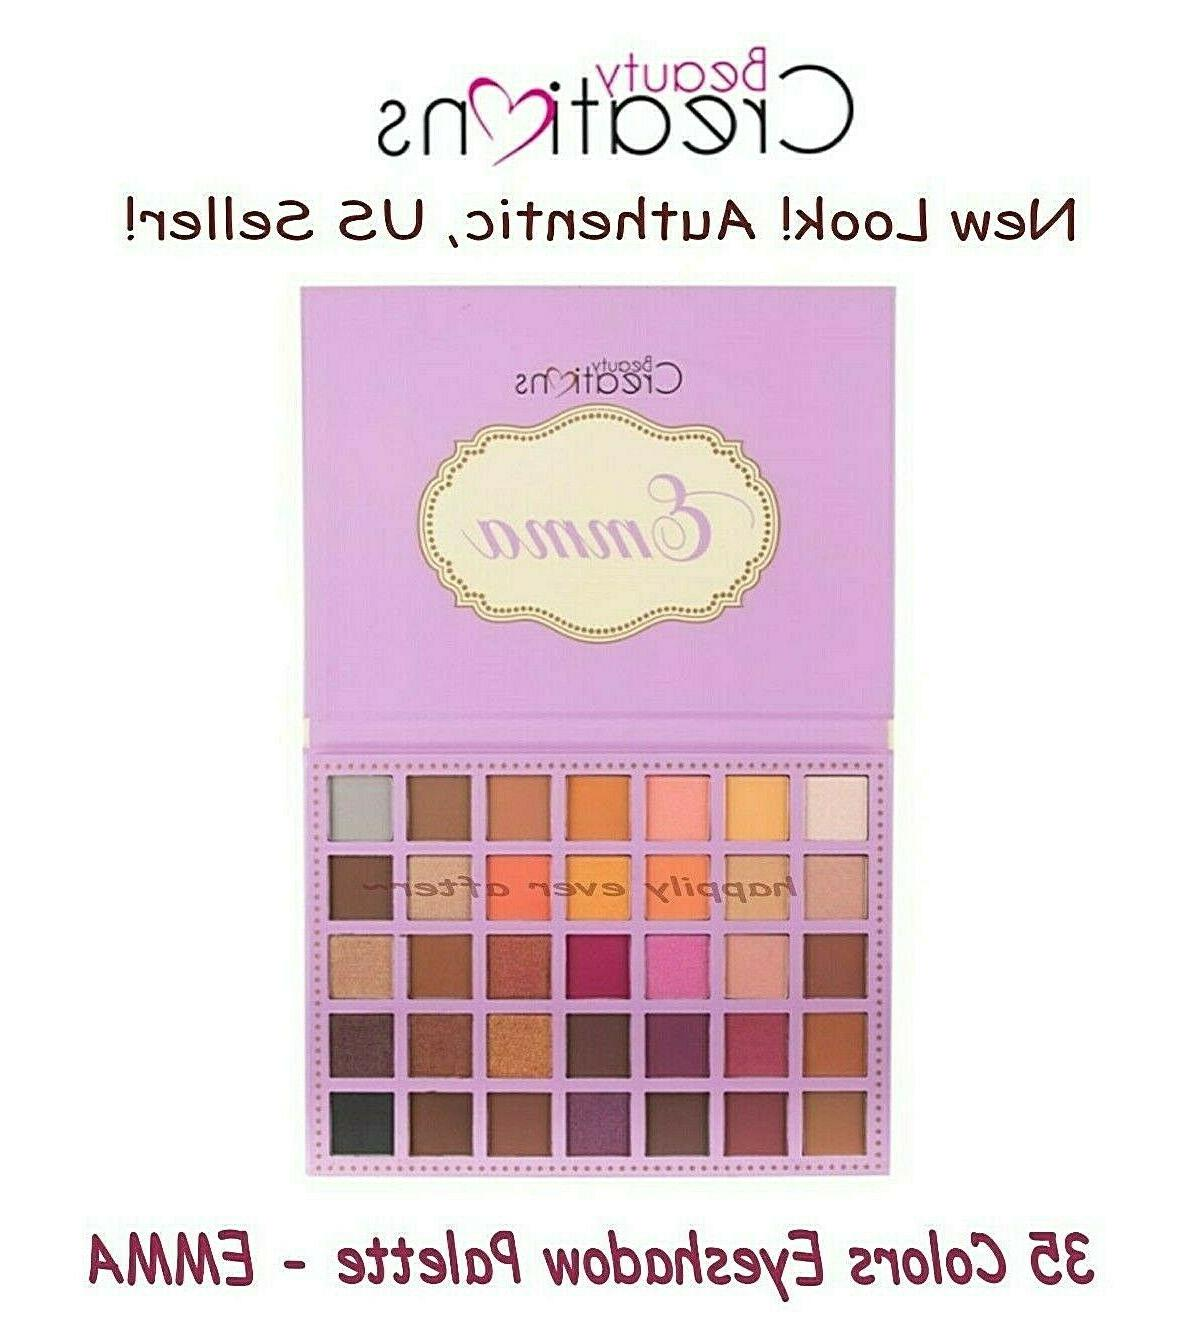 emma eyeshadow 35 color pro palette highly